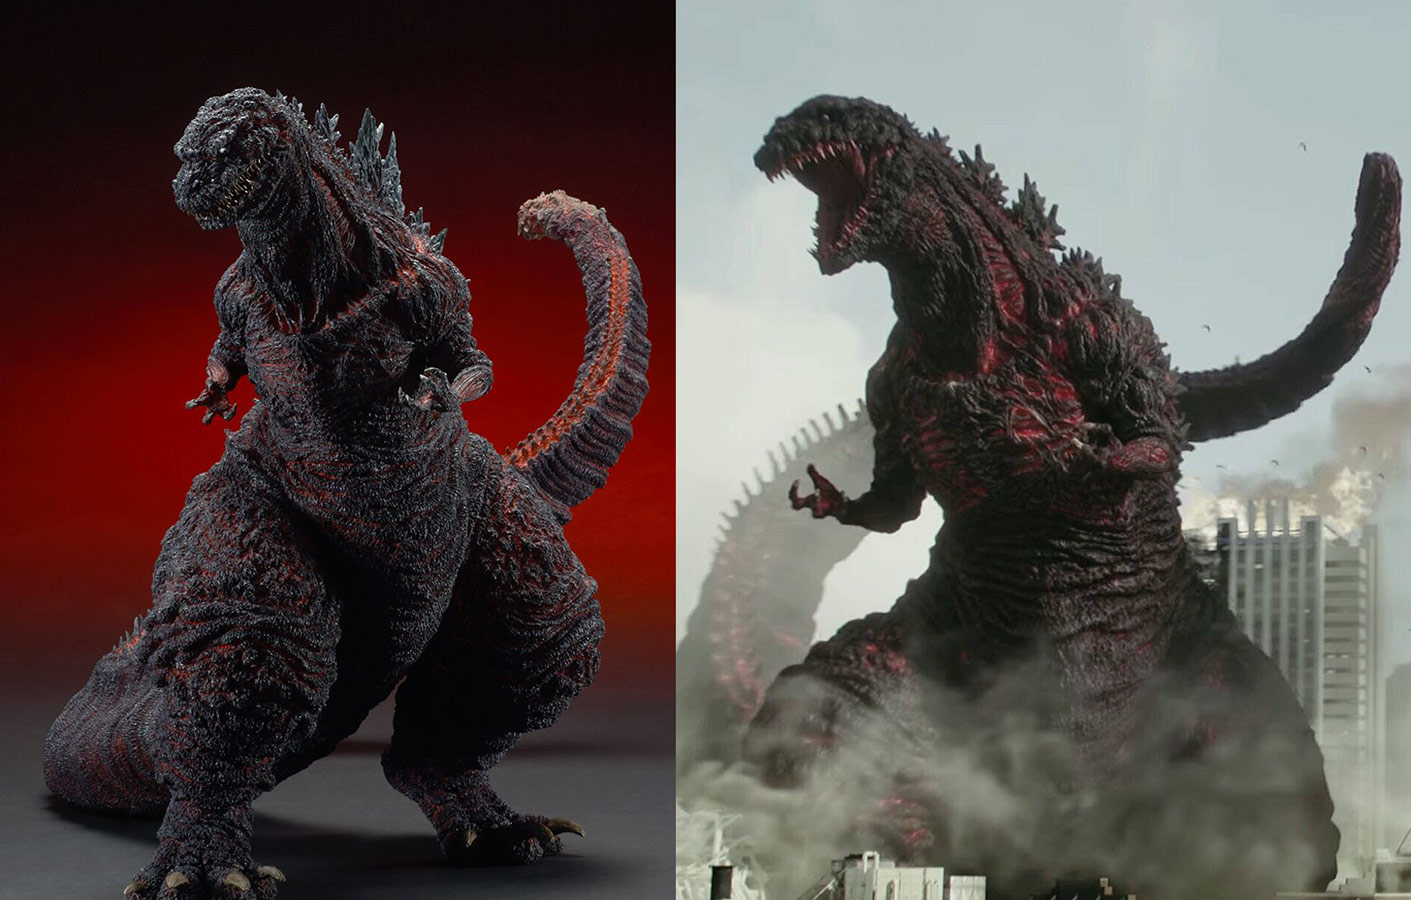 Side by side comparison with X-Plus figure and shot from the movie.